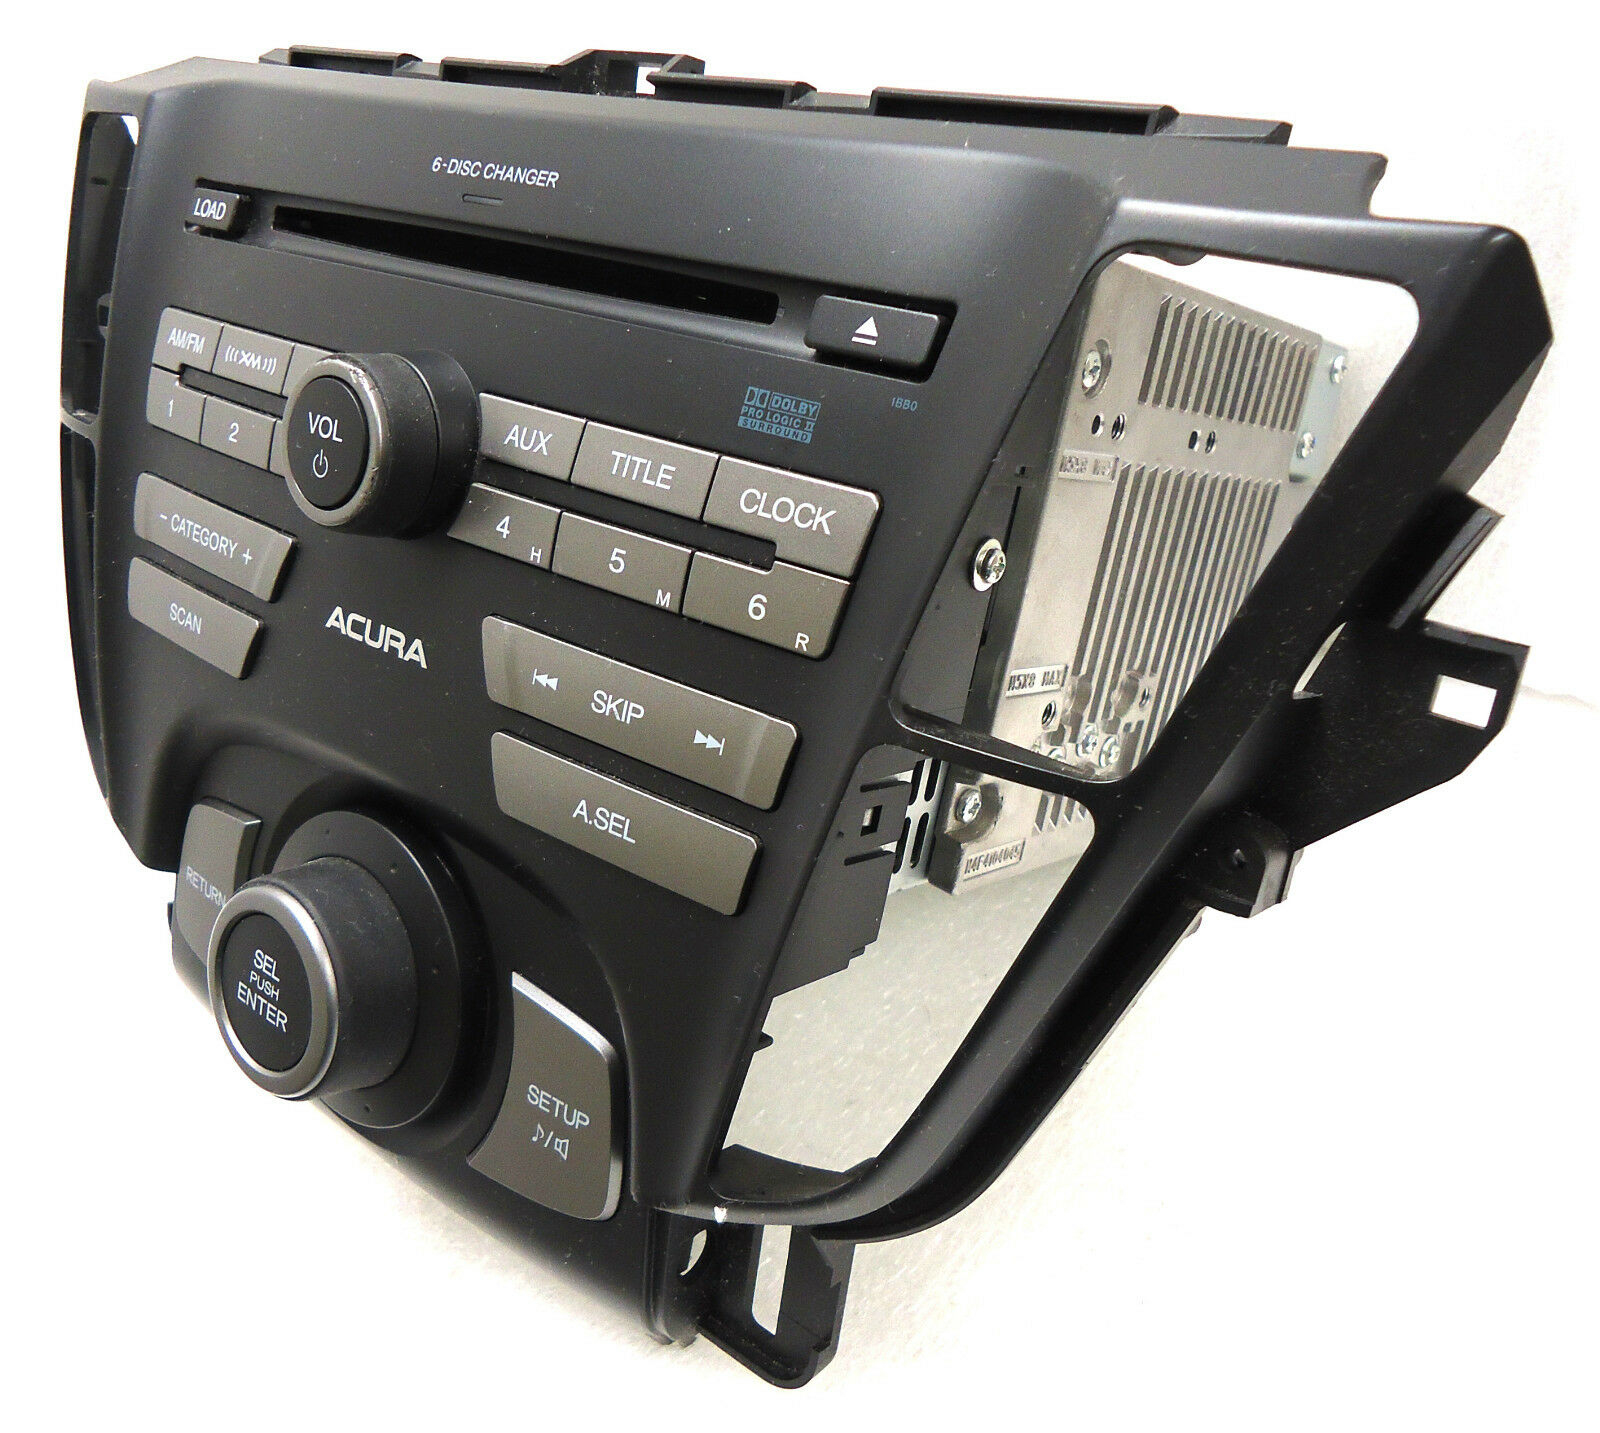 ACURA TL Radio Stereo 6 Disc Changer MP3 CD Player 1BB0